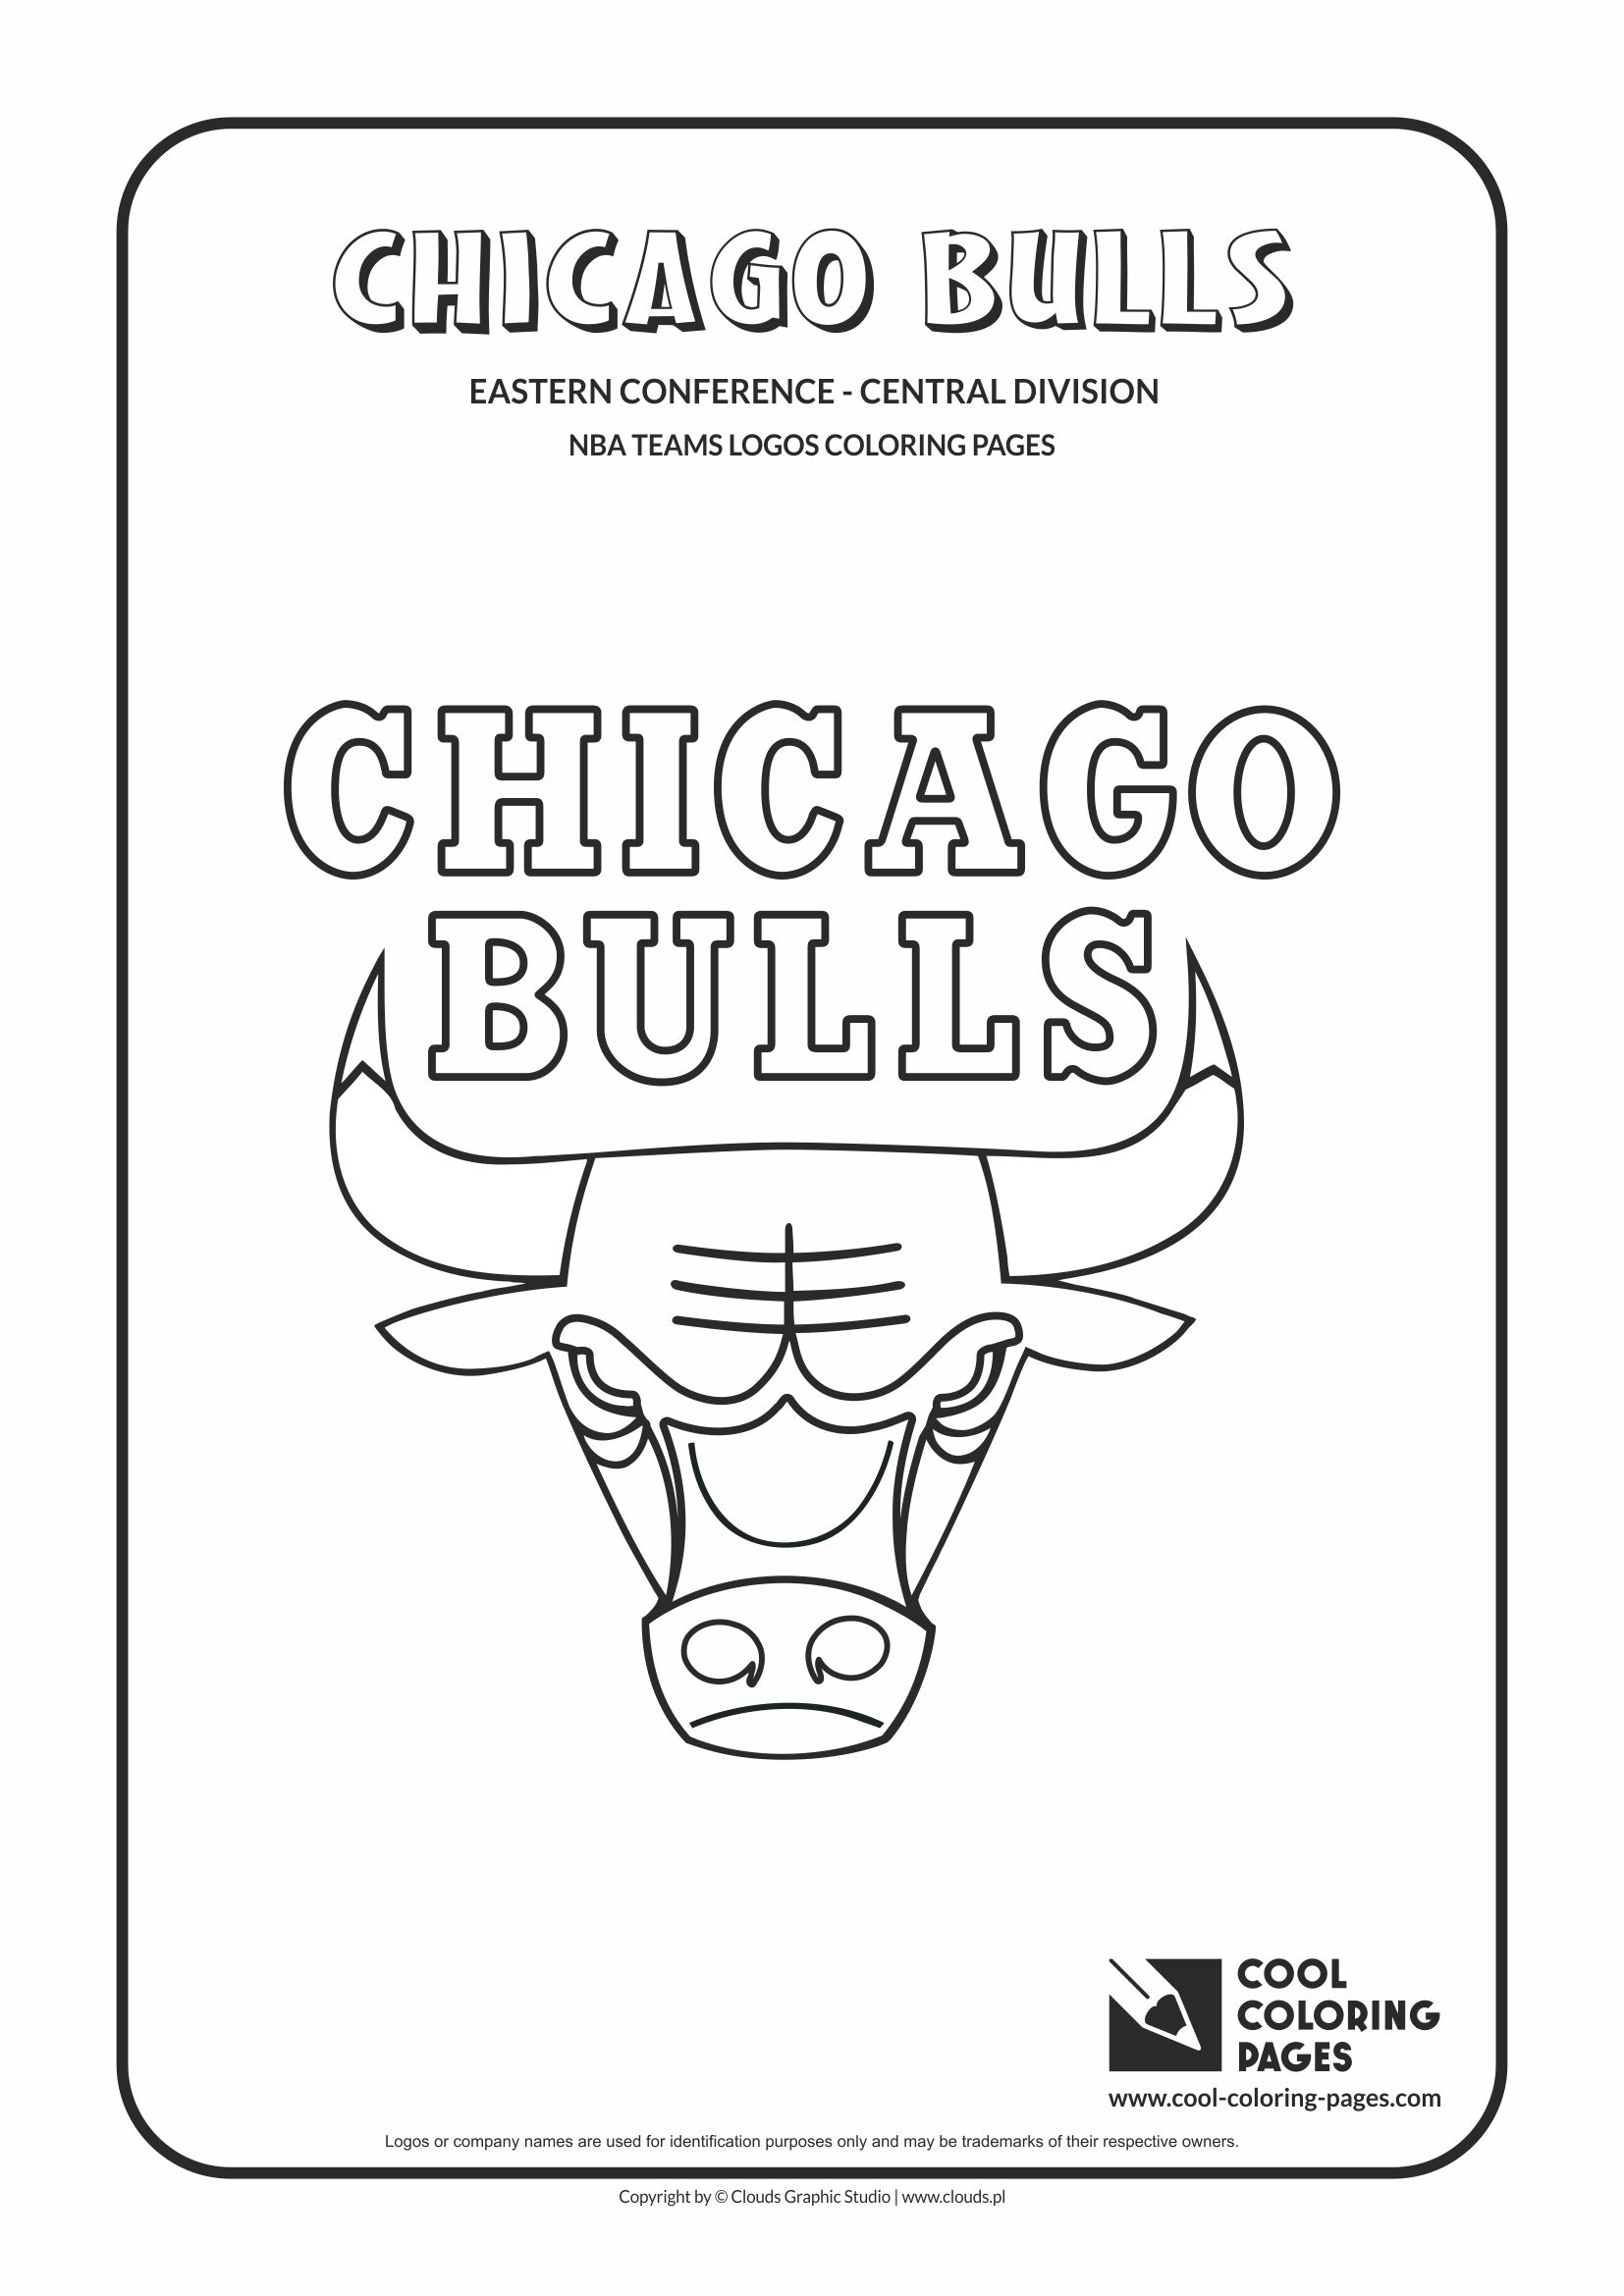 NBA Teams Logos Coloring Pages